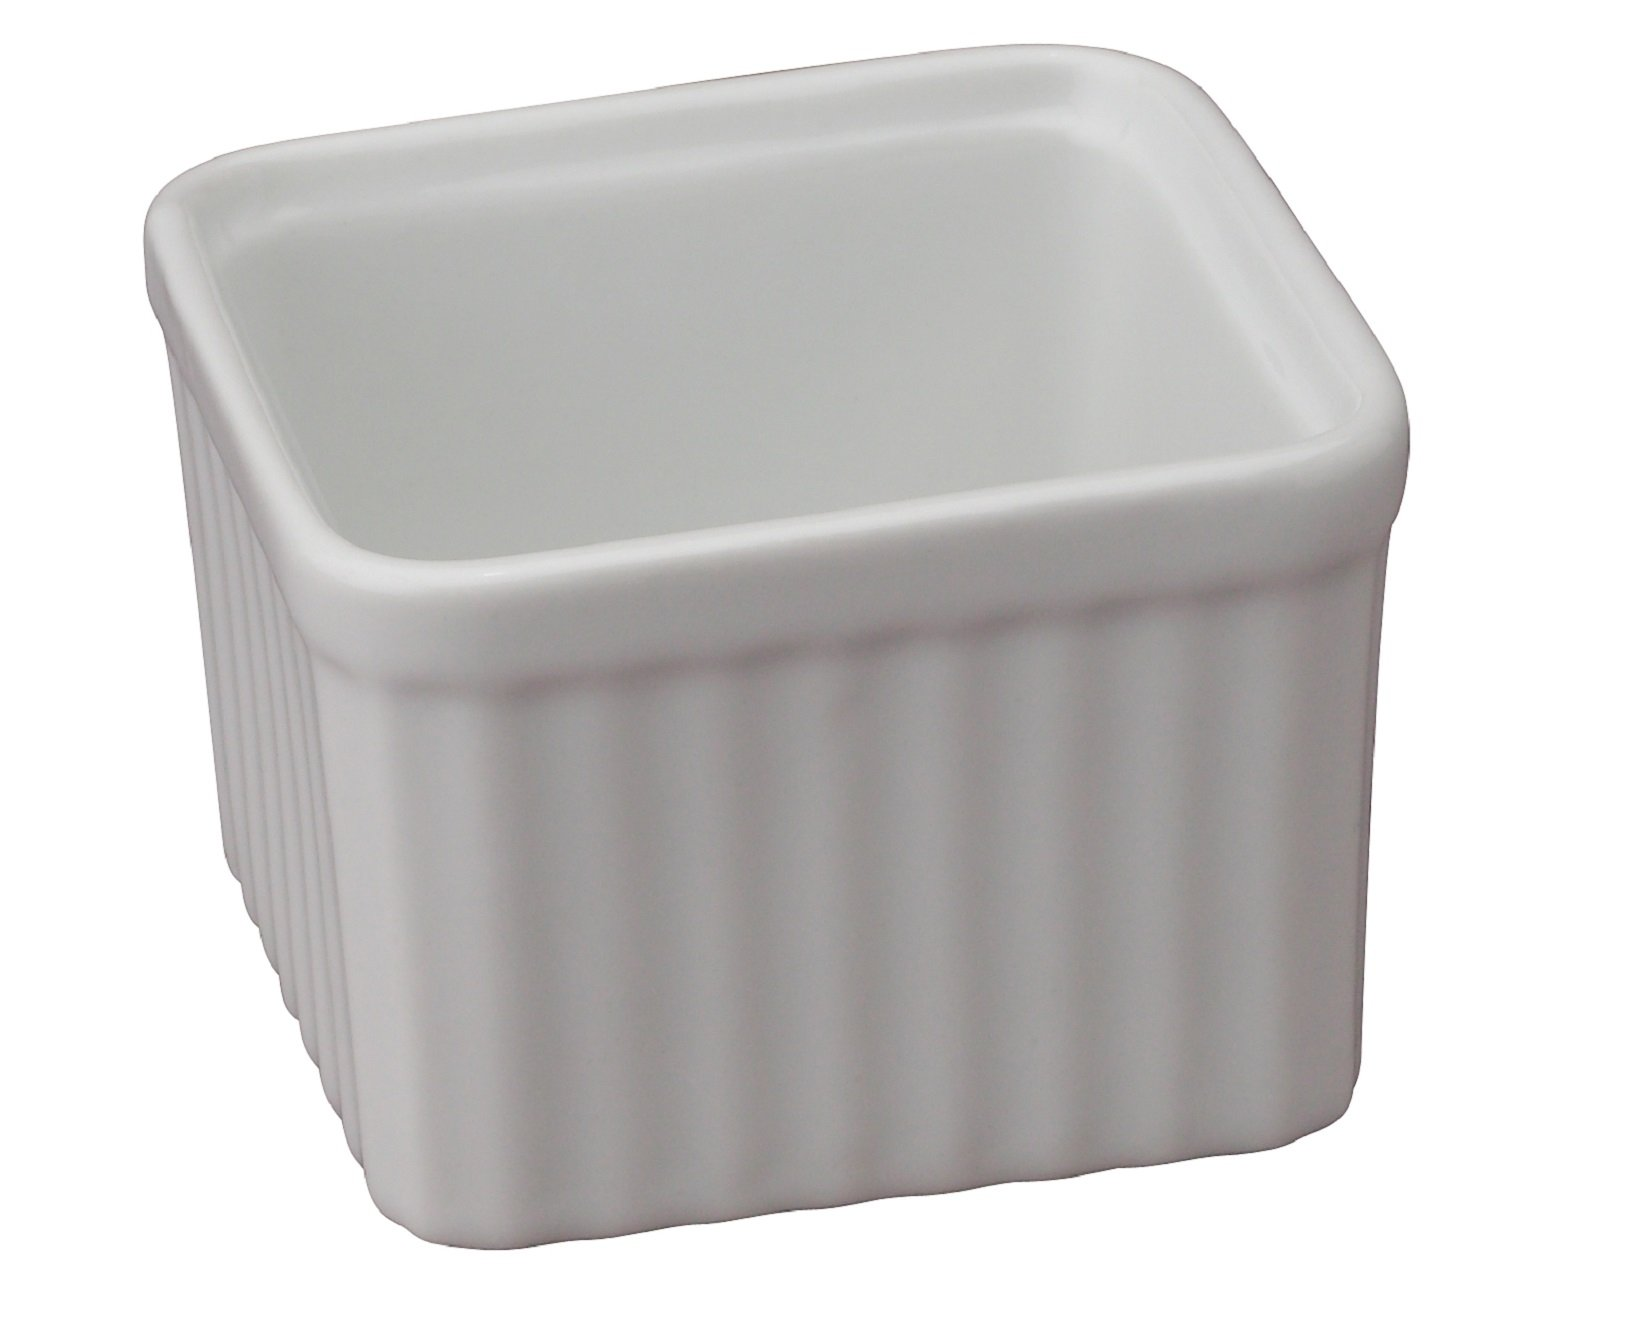 HIC Square Ramekins, Porcelain, 3-Inch, 6-Ounce Capacity, Set of 6 by HIC Harold Import Co. (Image #2)